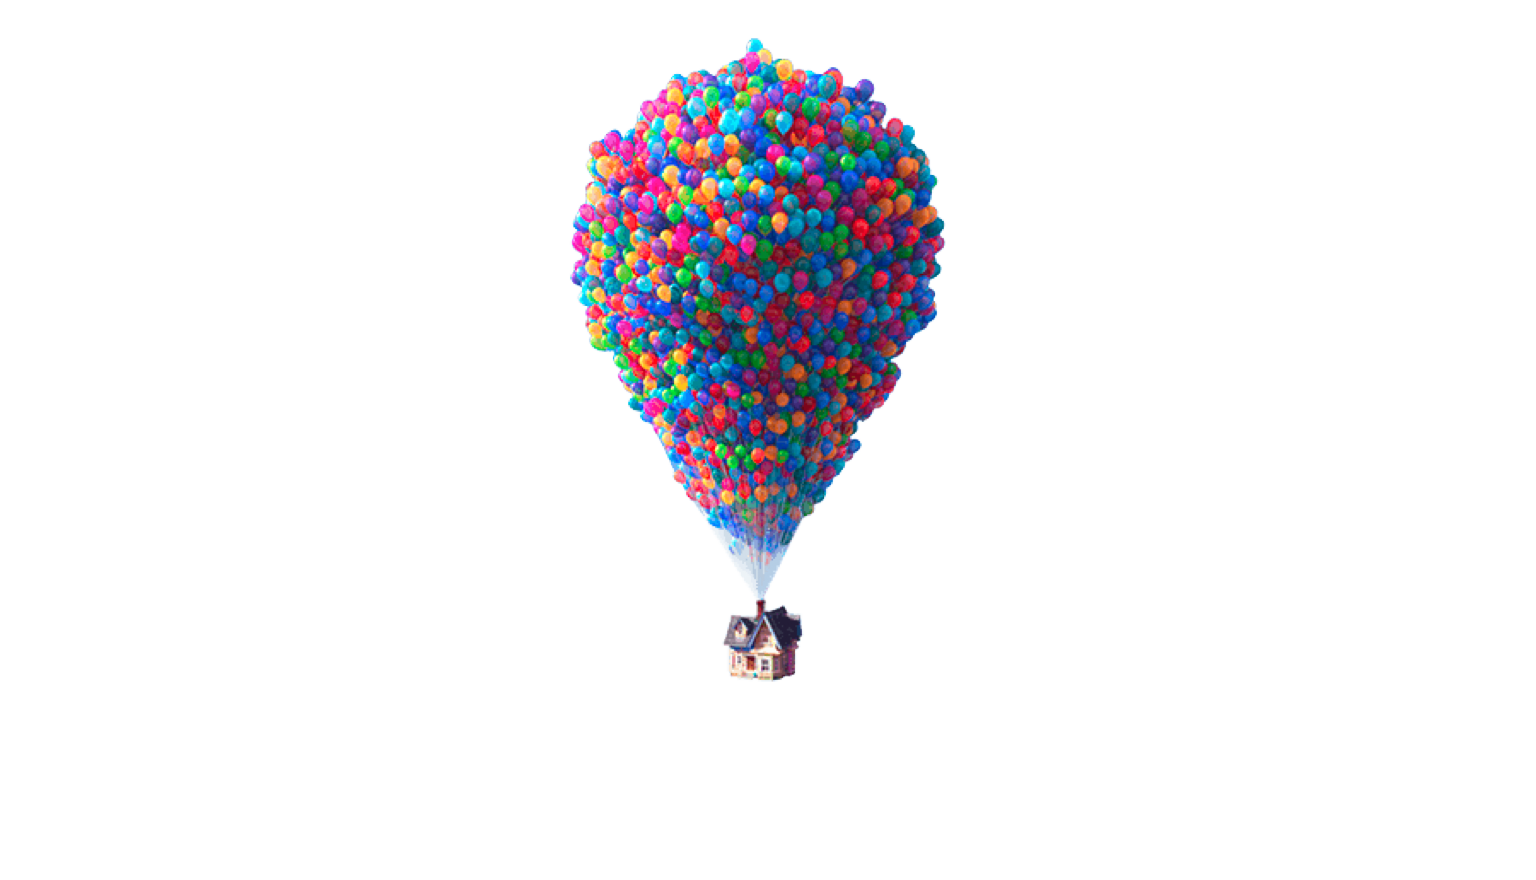 Up balloons png. It s time i